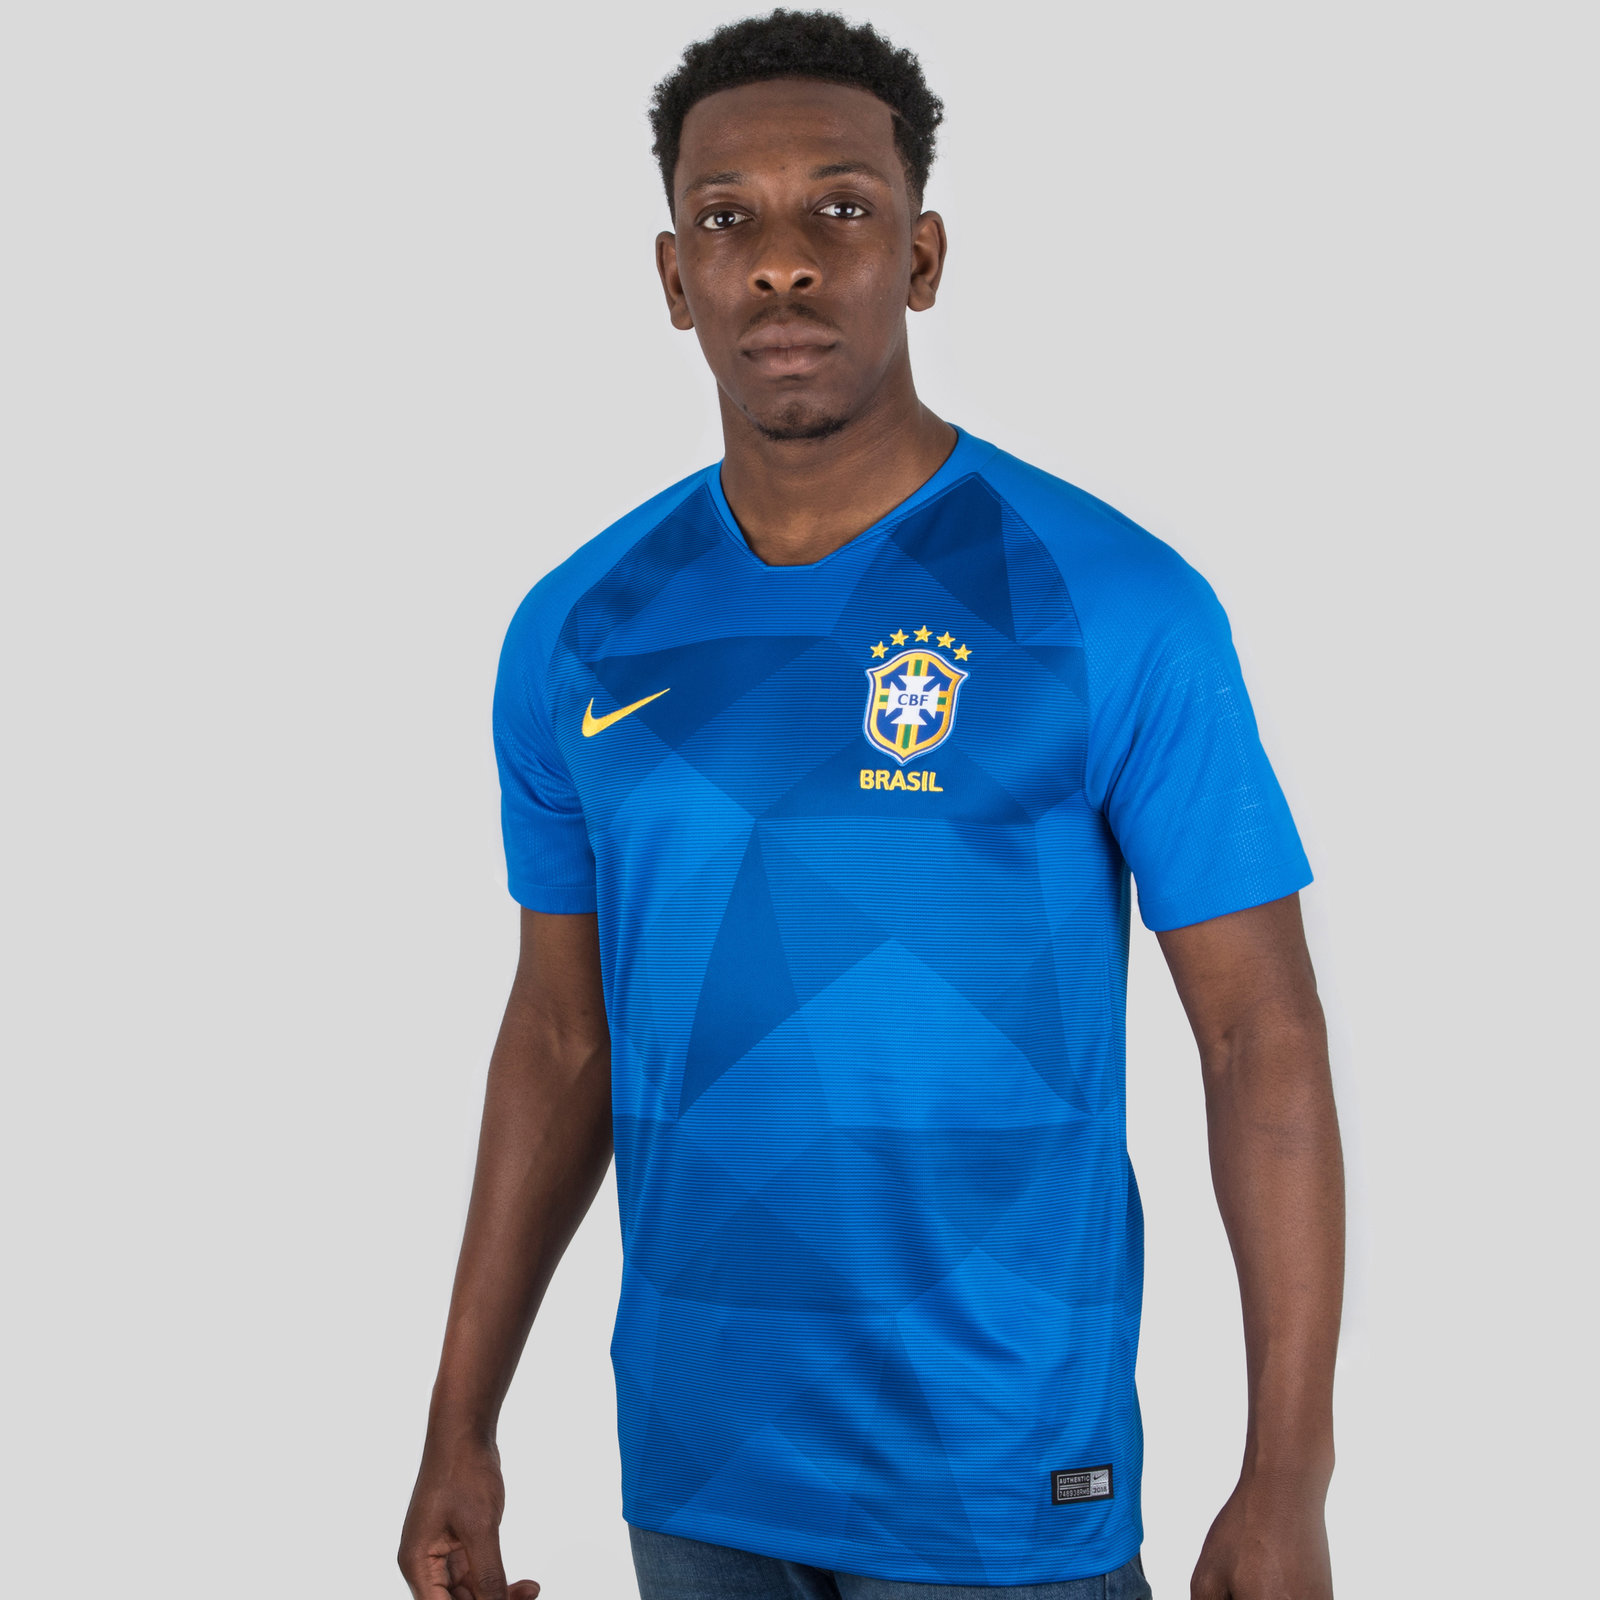 Brazil 2018 Away short sleeve Stadium Football Shirt